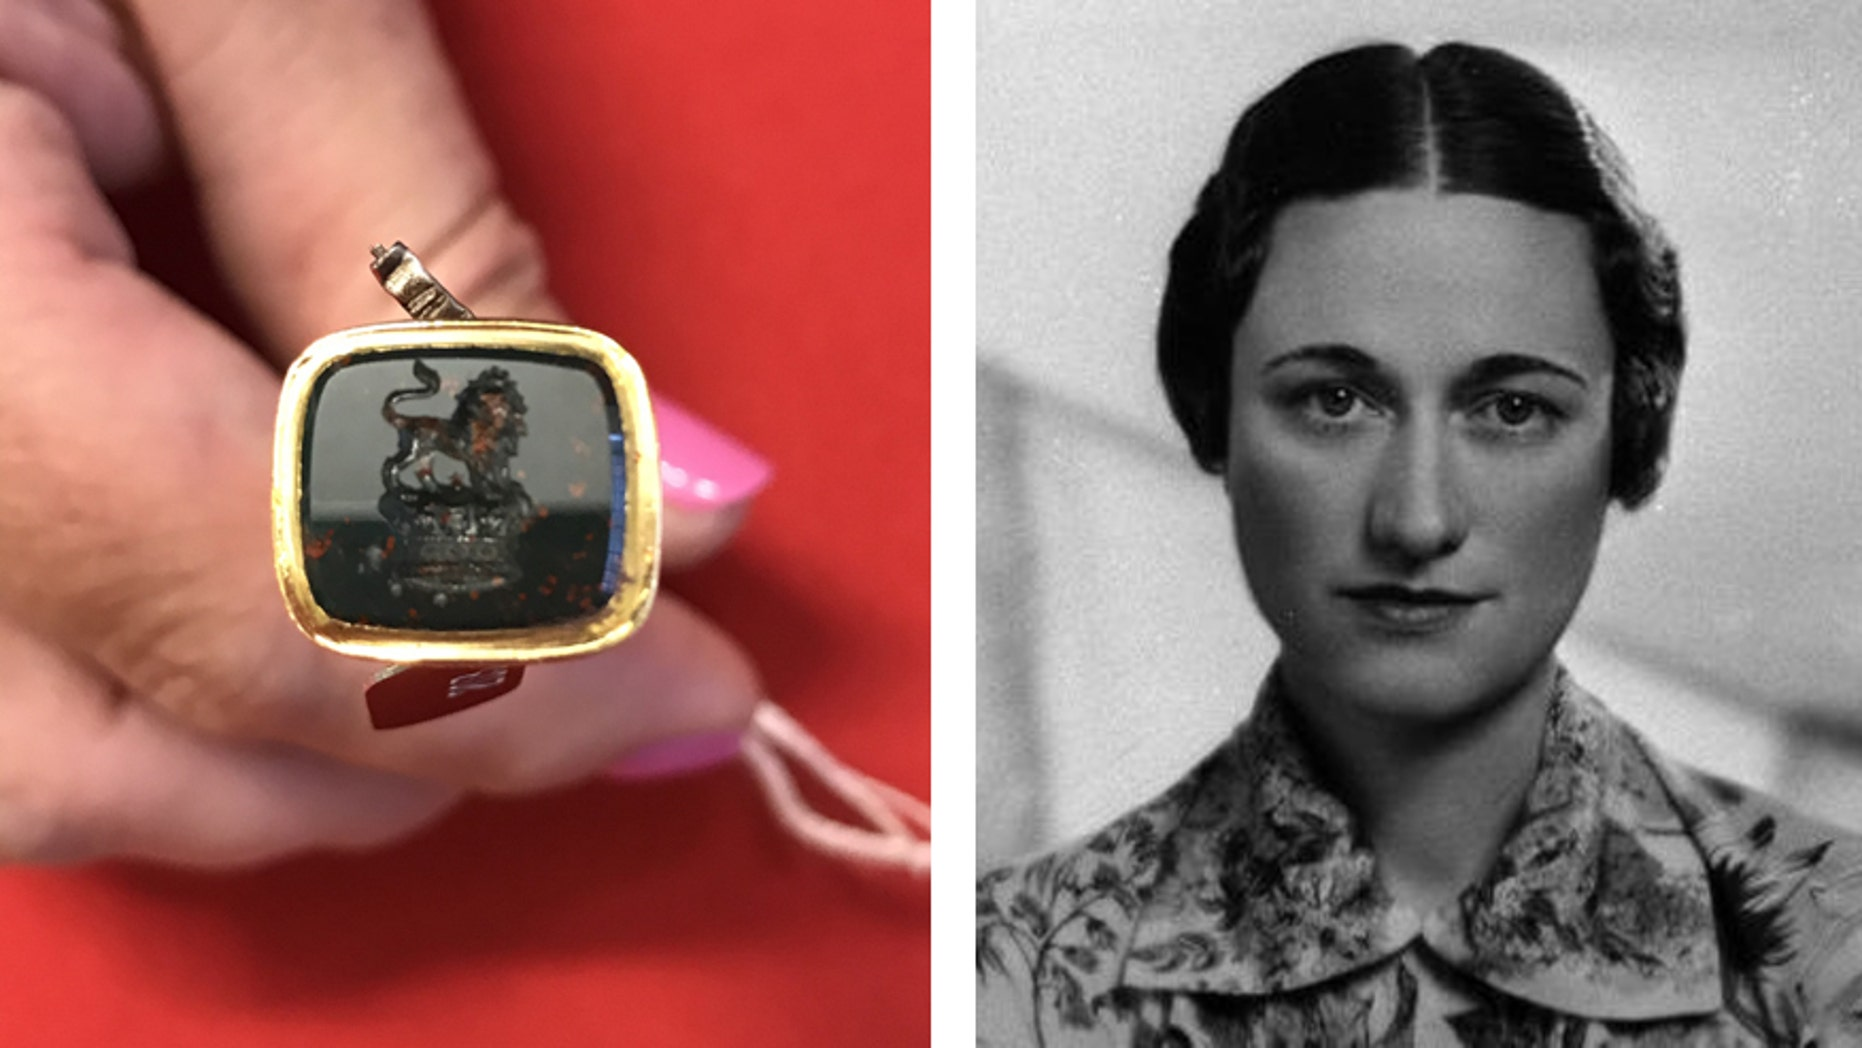 A number of personal items that once belonged to Wallis Simpson and King Edward VIII are up for auction.